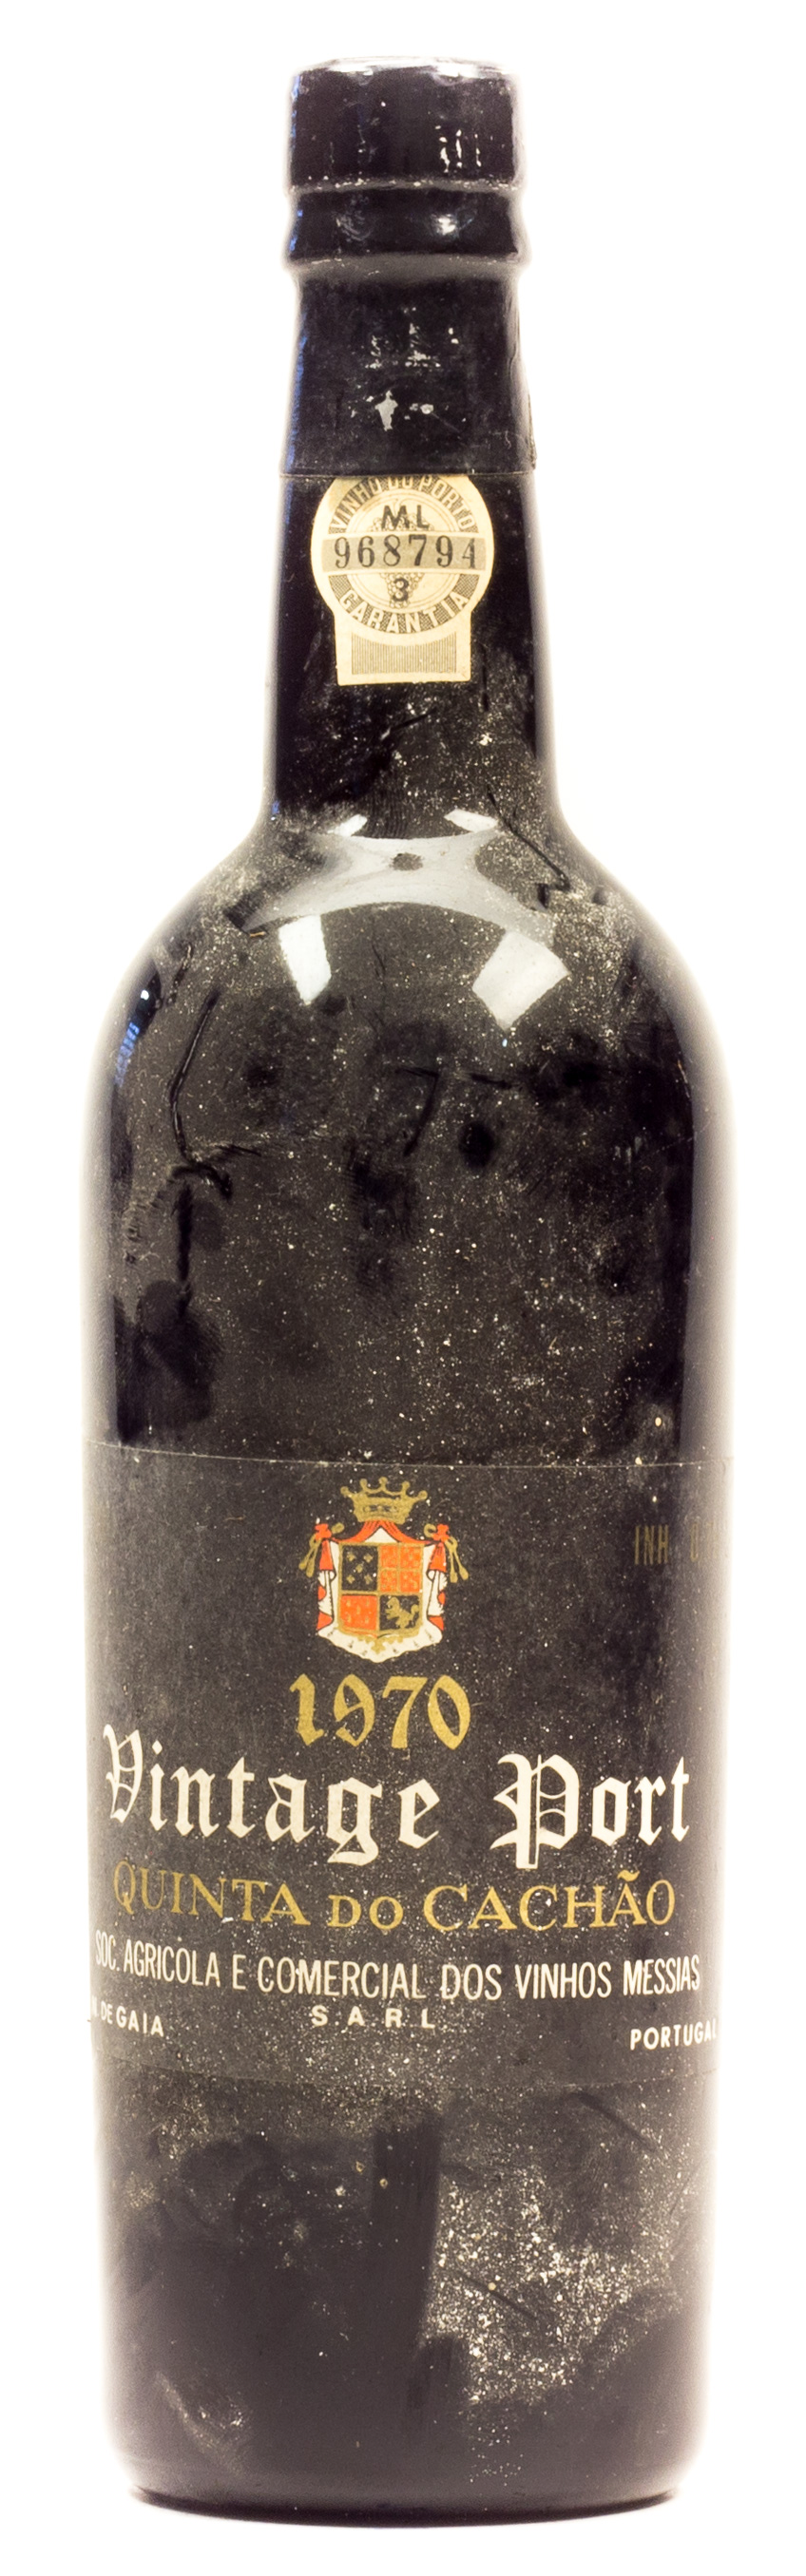 Vintage Port 1970 Quinta Do Cachao 0,75 l